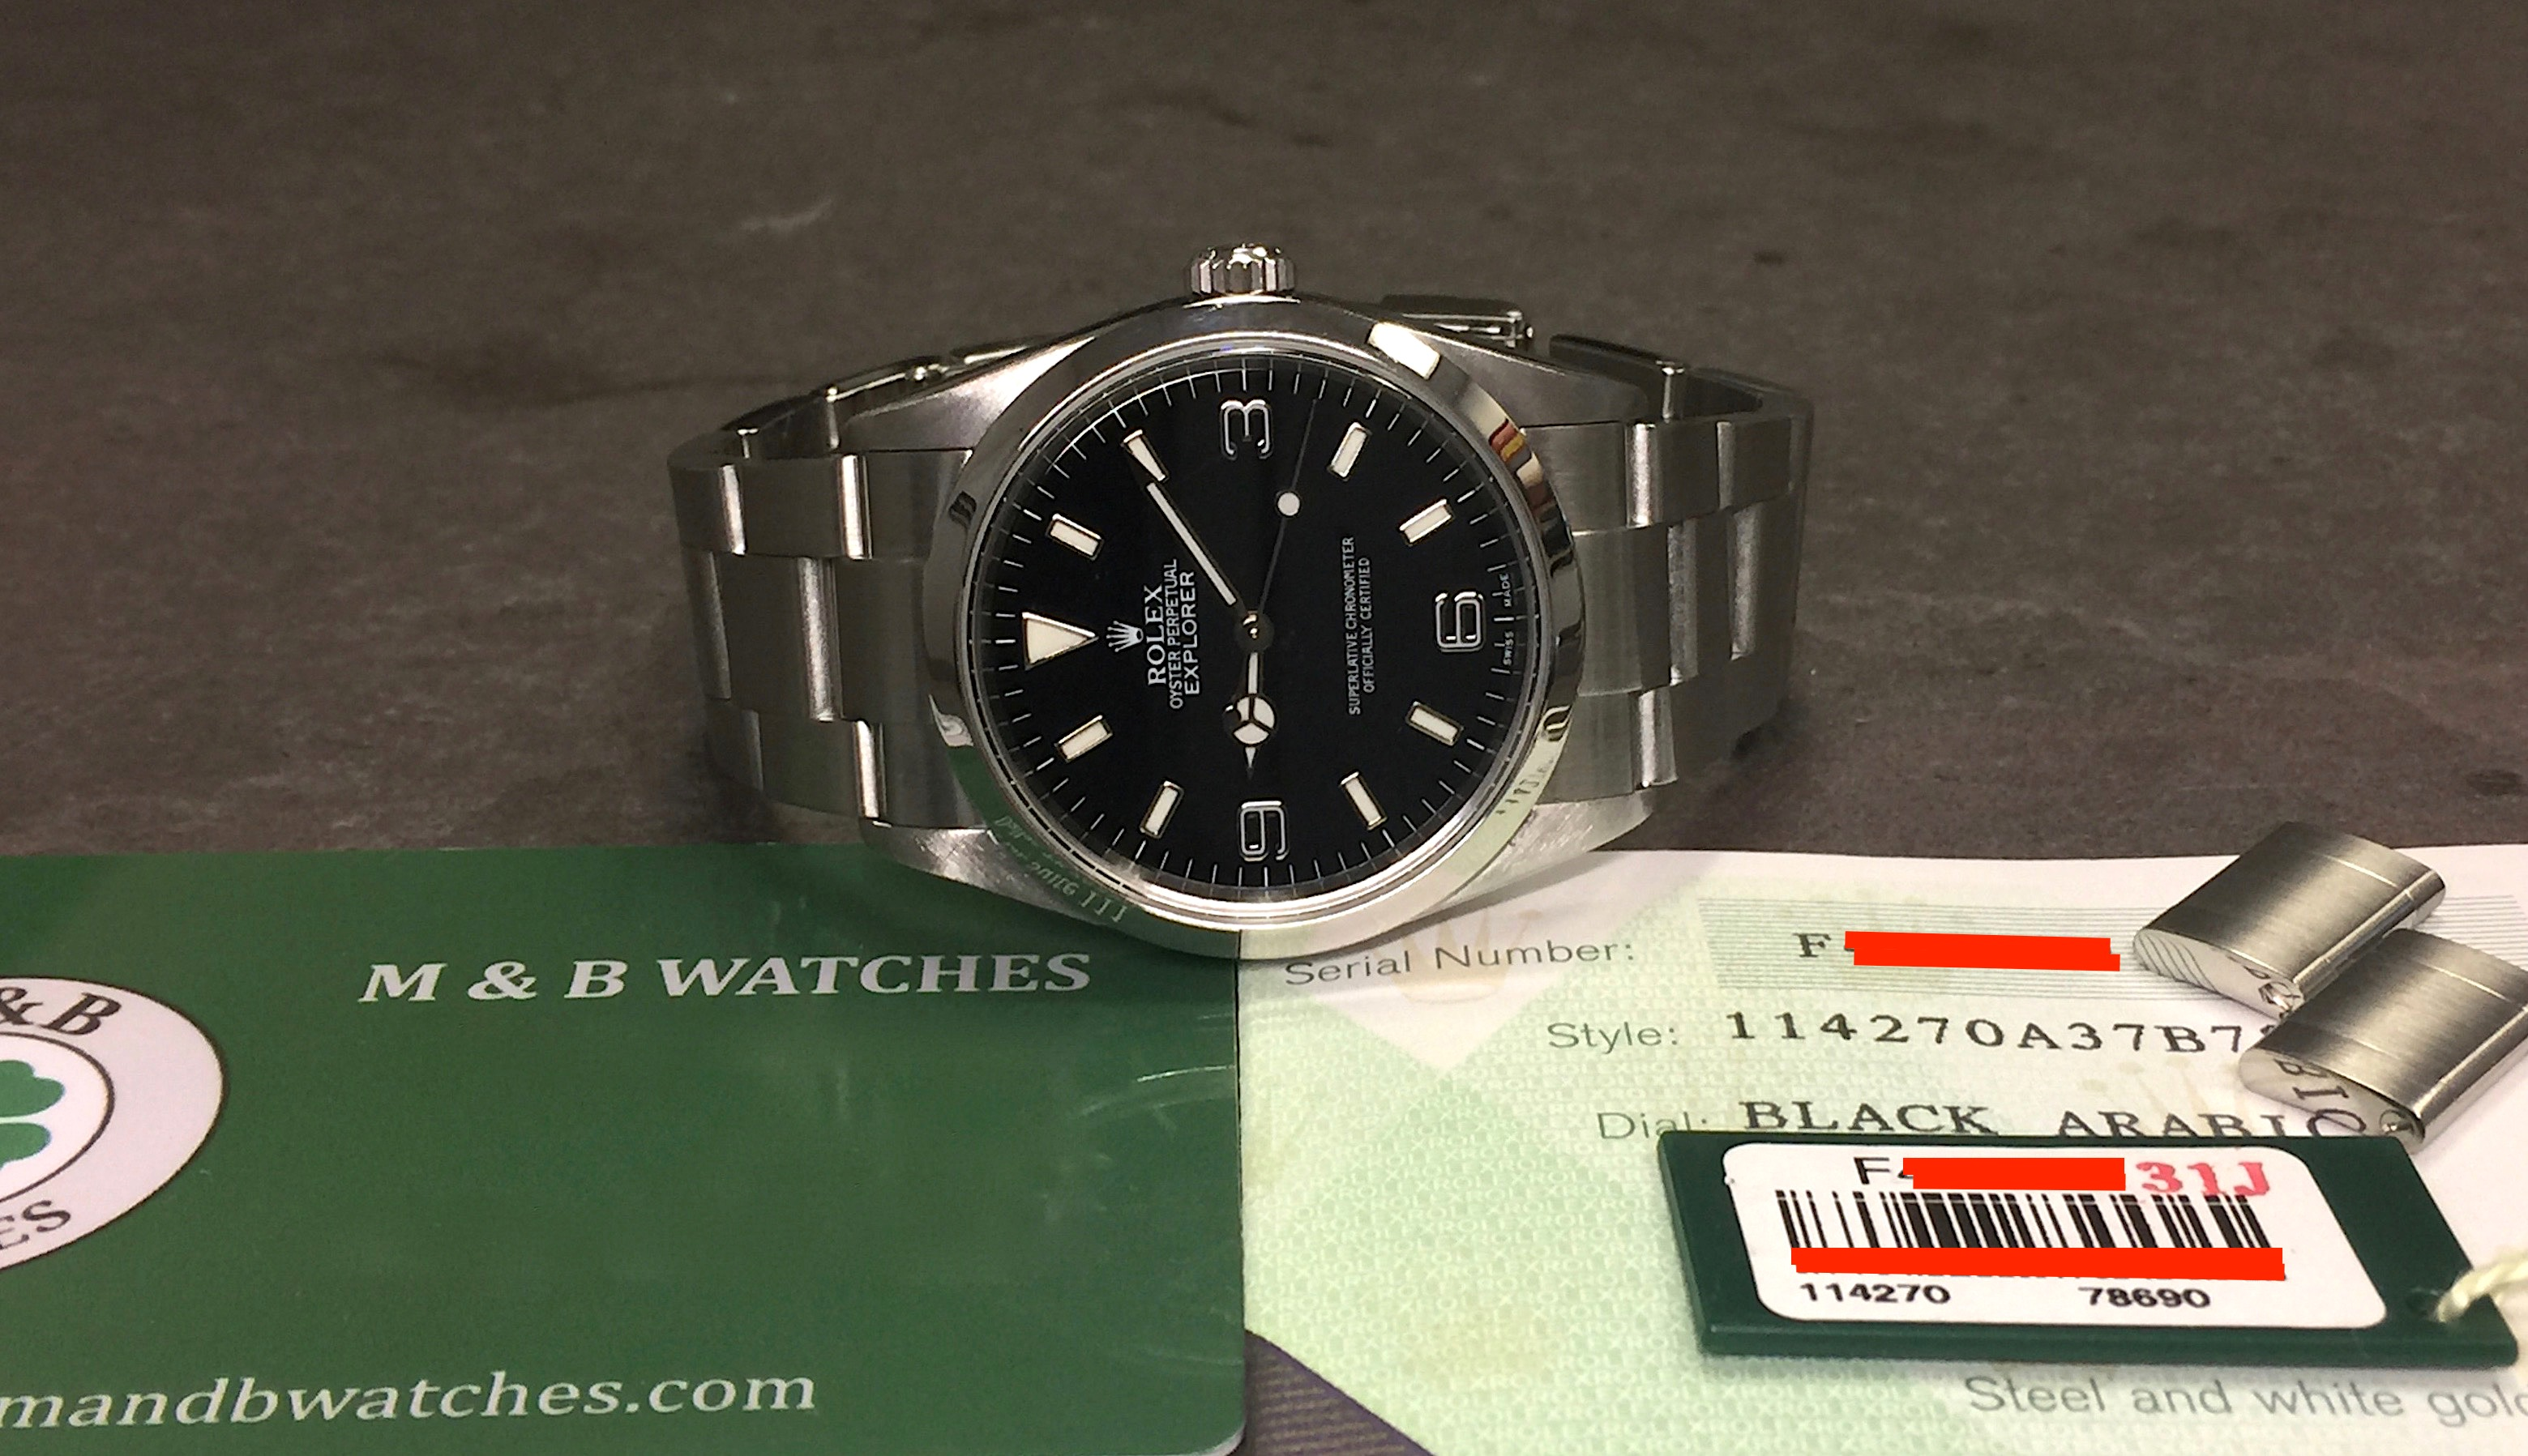 rolex explorer ef bd watches watch category crown maniax tokyo